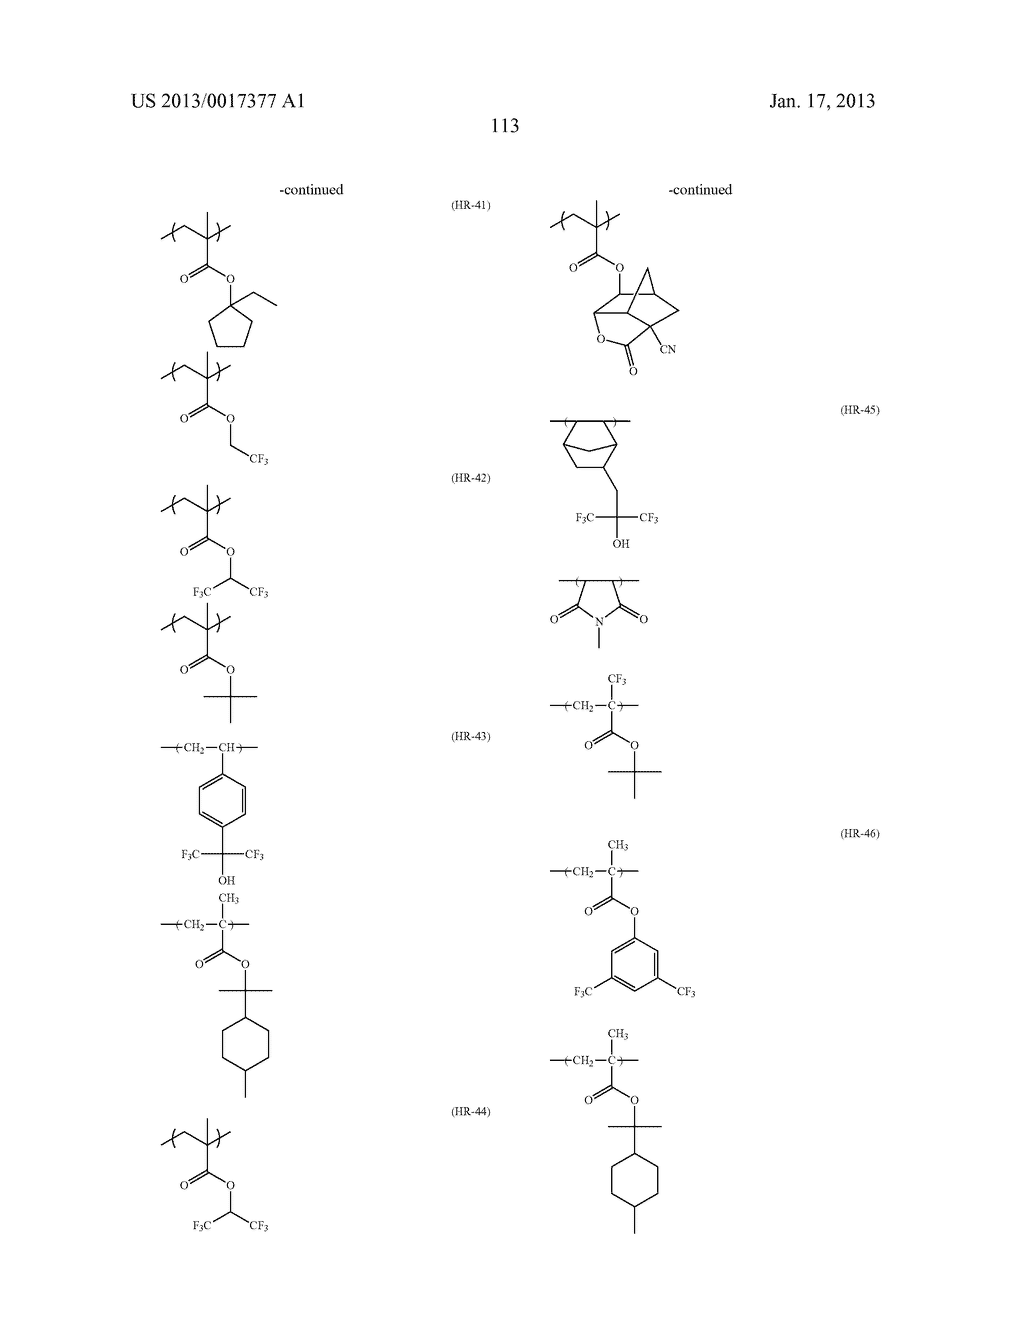 ACTINIC-RAY- OR RADIATION-SENSITIVE RESIN COMPOSITION AND METHOD OF     FORMING PATTERN USING THE SAMEAANM Kataoka; ShoheiAACI ShizuokaAACO JPAAGP Kataoka; Shohei Shizuoka JPAANM Iwato; KaoruAACI ShizuokaAACO JPAAGP Iwato; Kaoru Shizuoka JPAANM Kamimura; SouAACI ShizuokaAACO JPAAGP Kamimura; Sou Shizuoka JPAANM Tsuchihashi; ToruAACI ShizuokaAACO JPAAGP Tsuchihashi; Toru Shizuoka JPAANM Enomoto; YuichiroAACI ShizuokaAACO JPAAGP Enomoto; Yuichiro Shizuoka JPAANM Fujii; KanaAACI ShizuokaAACO JPAAGP Fujii; Kana Shizuoka JPAANM Mizutani; KazuyoshiAACI ShizuokaAACO JPAAGP Mizutani; Kazuyoshi Shizuoka JPAANM Tarutani; ShinjiAACI ShizuokaAACO JPAAGP Tarutani; Shinji Shizuoka JPAANM Kato; KeitaAACI ShizuokaAACO JPAAGP Kato; Keita Shizuoka JP - diagram, schematic, and image 114